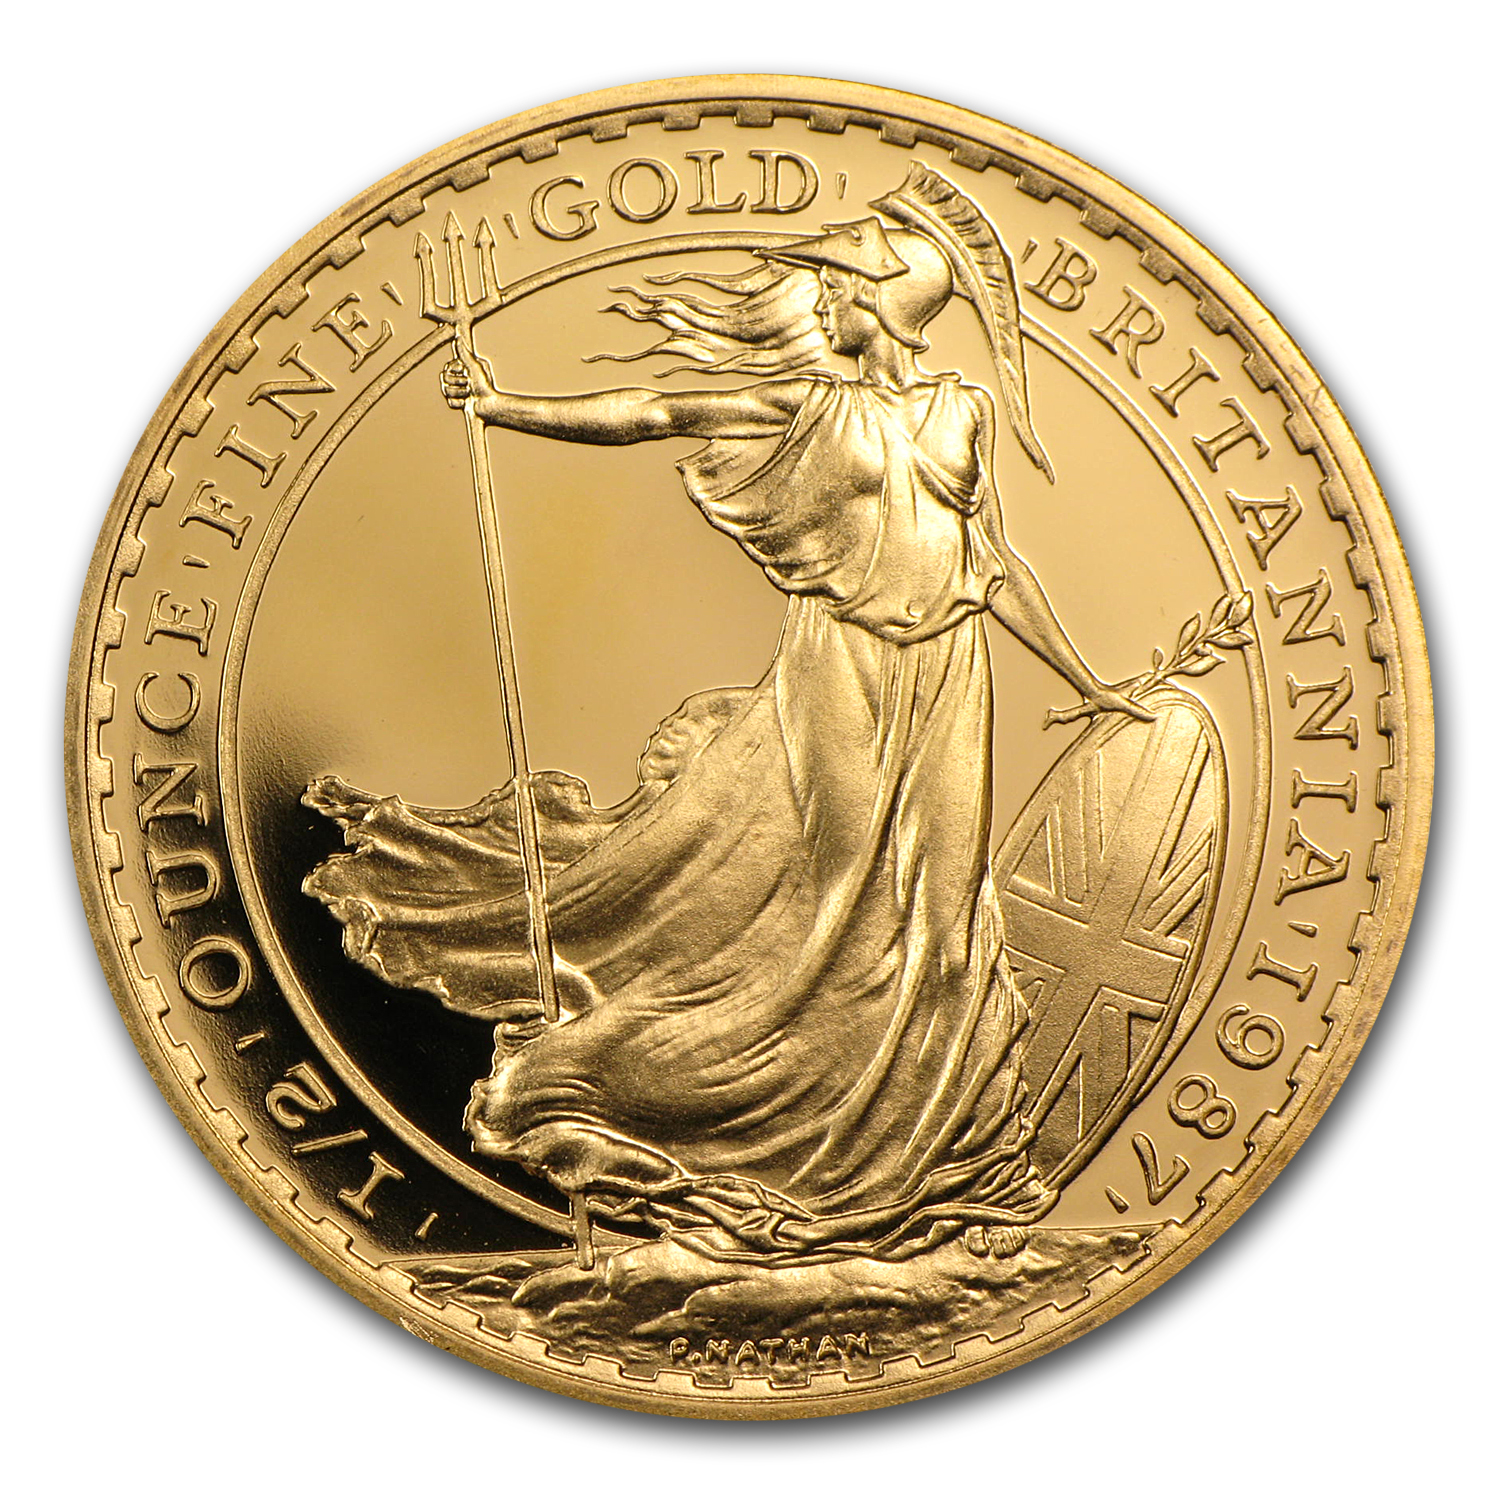 1987 Great Britain 1/2 oz Proof Gold Britannia